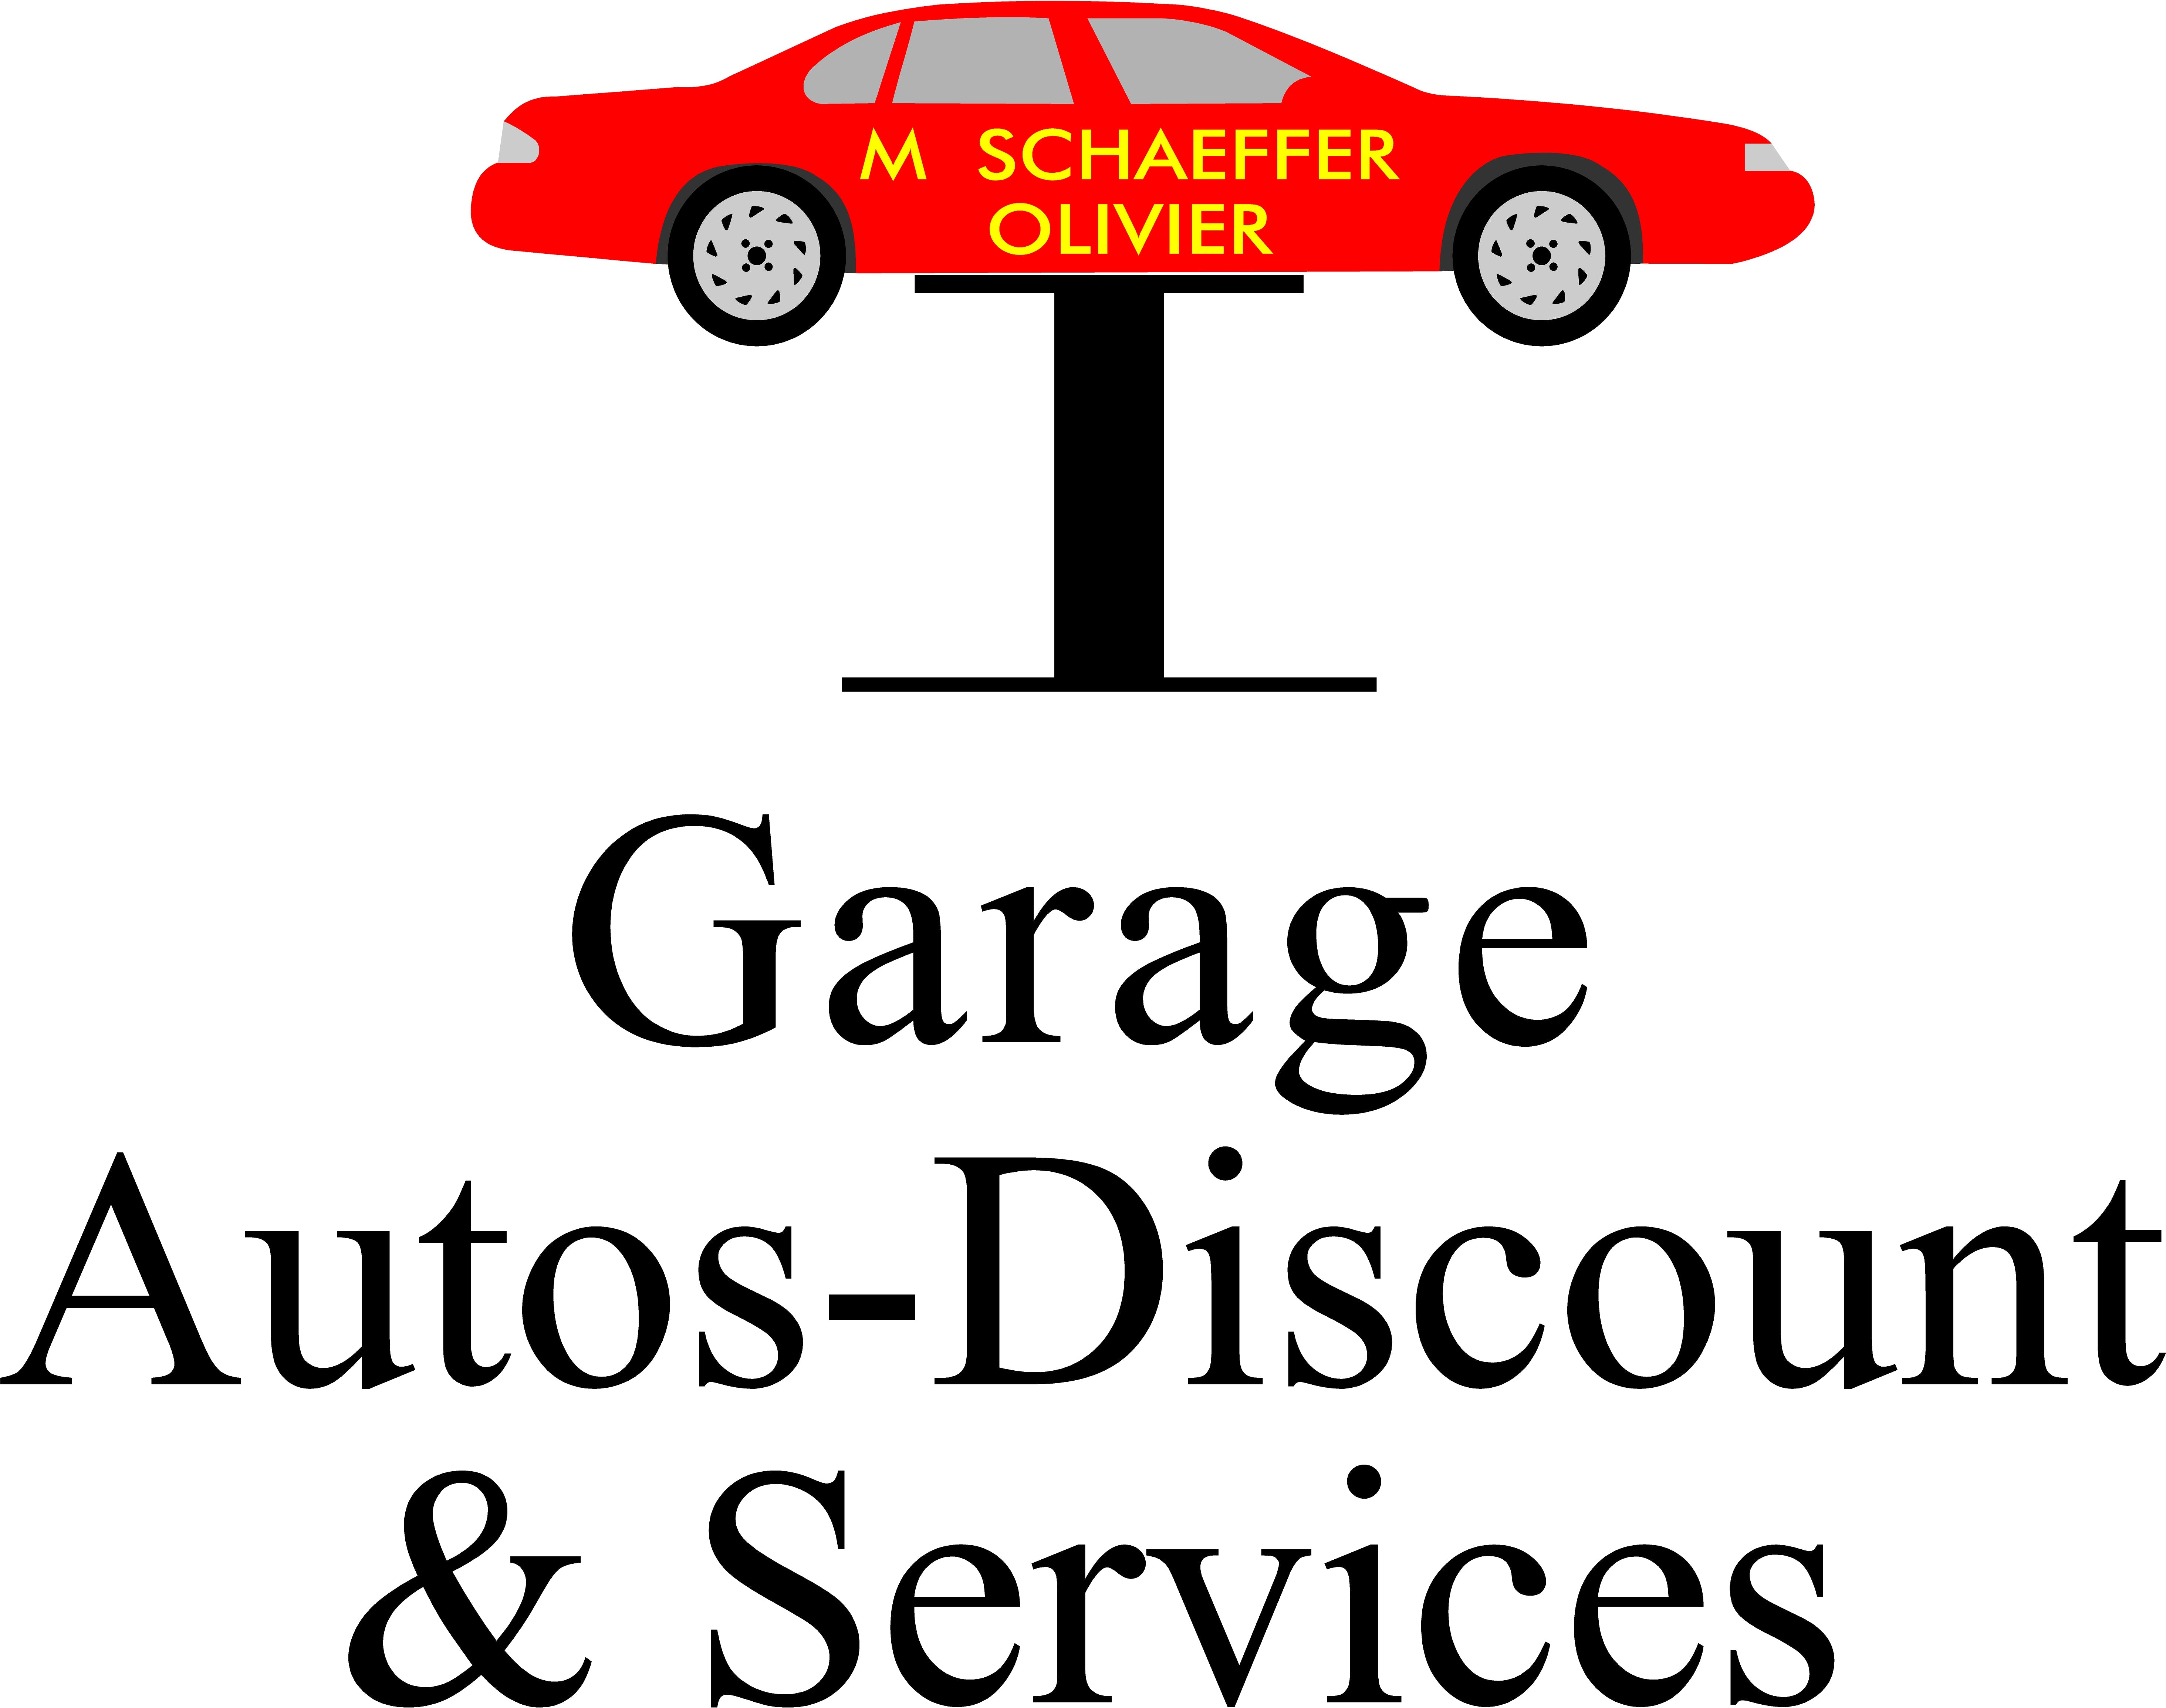 Olivier de Autos Discount & Services